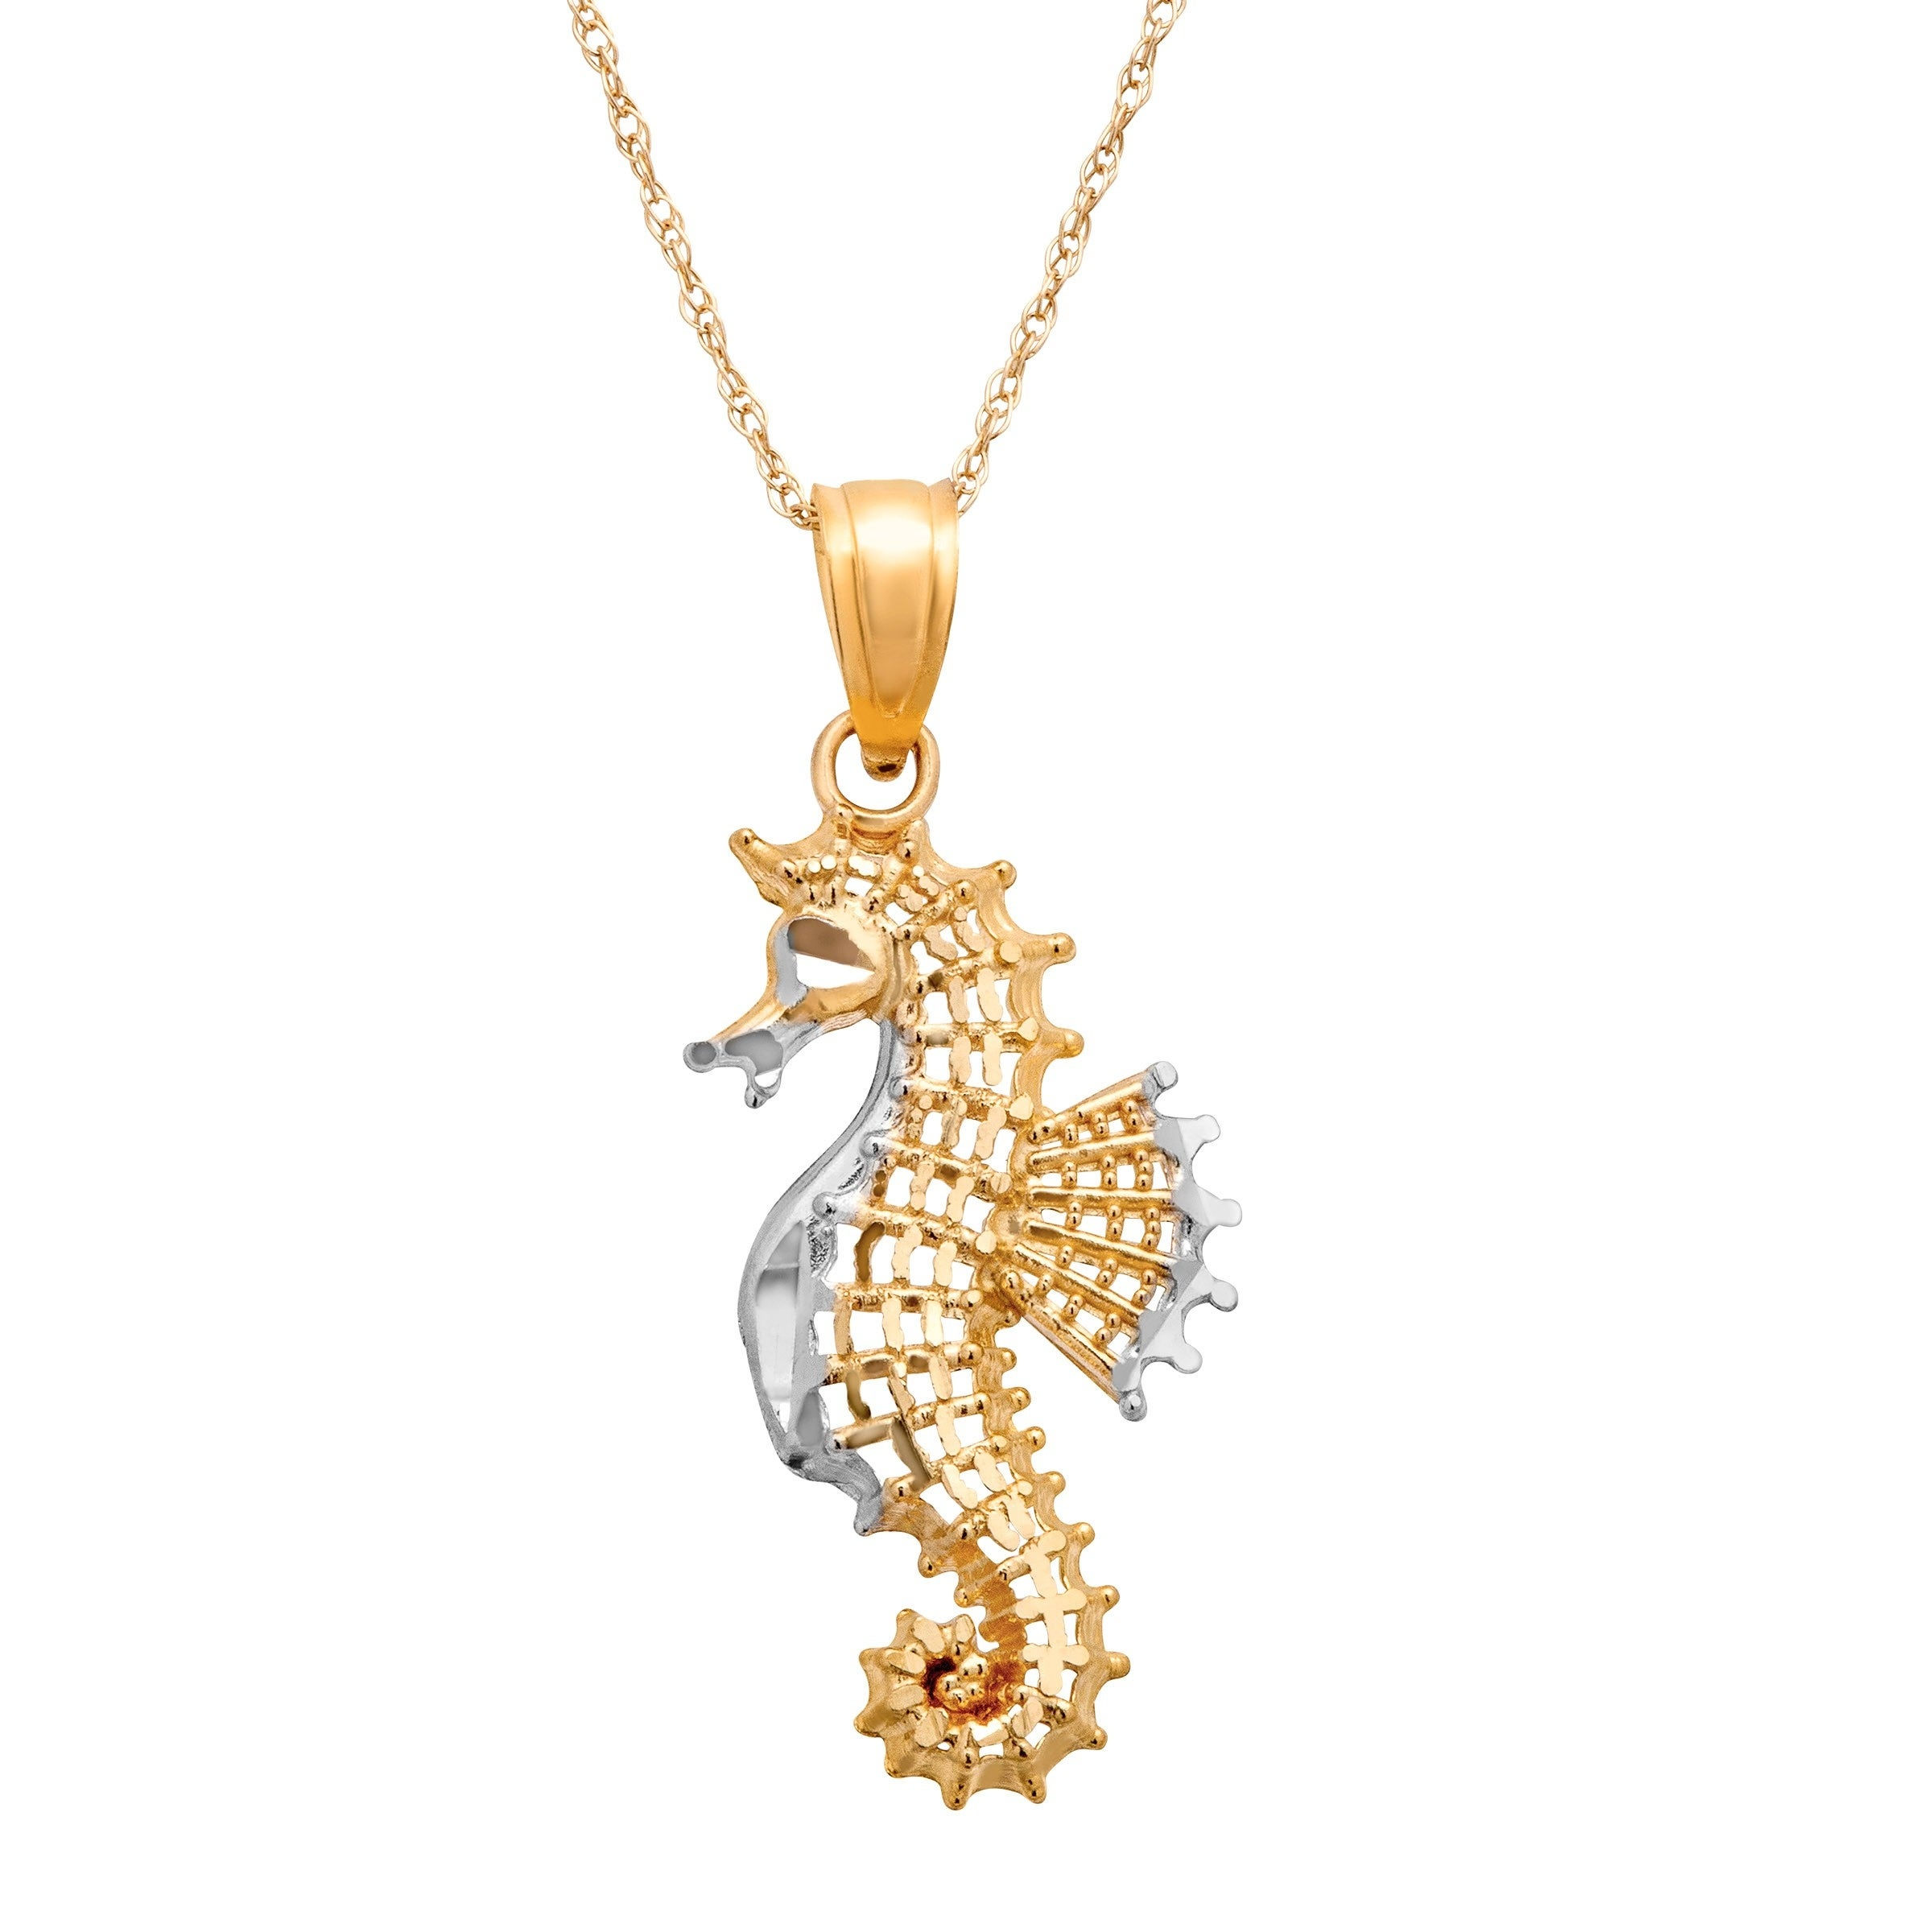 seahorse arlette innabox gold products kids jewellery necklace